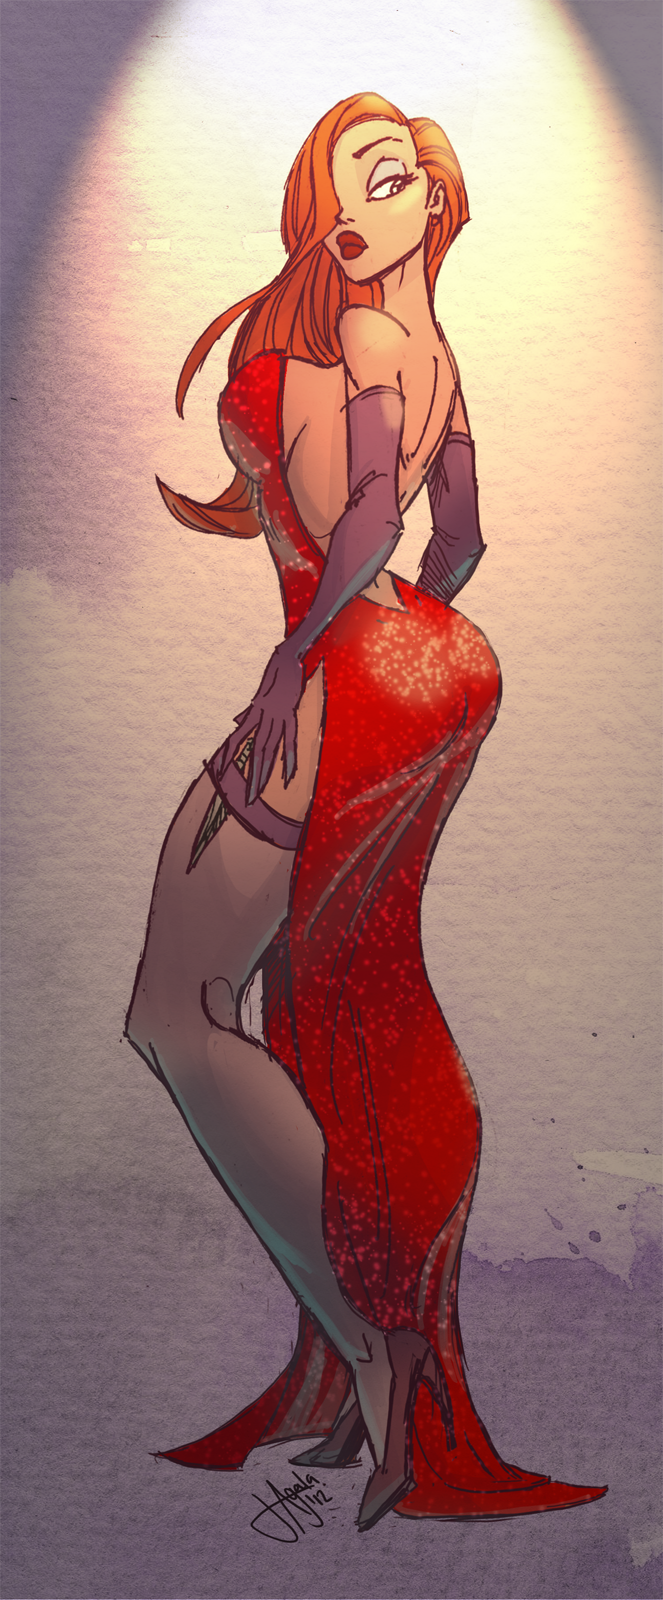 PLANET-PULP // CELEBRATING PULP CULTURE: Jessica Rabbit